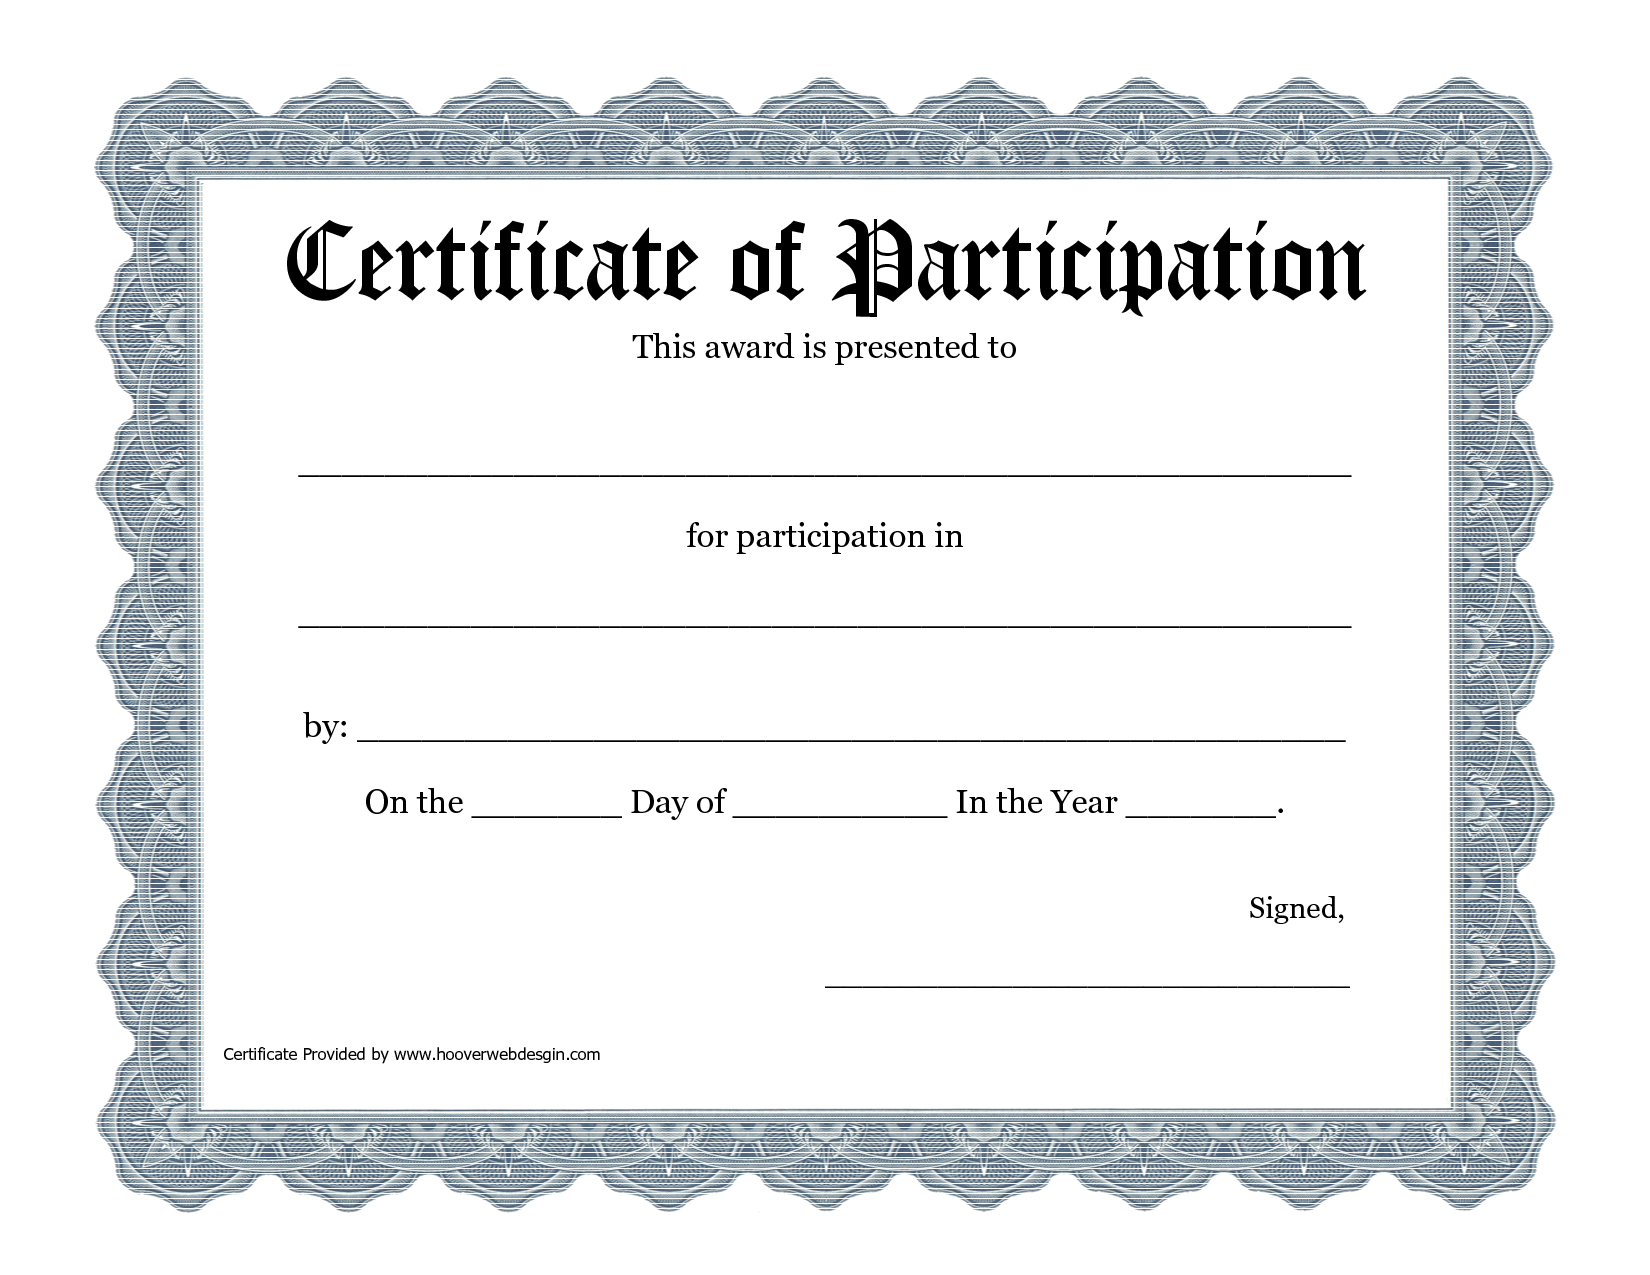 Free Printable Award Certificate Template - Bing Images | 2016 Art - Free Printable Halloween Award Certificates